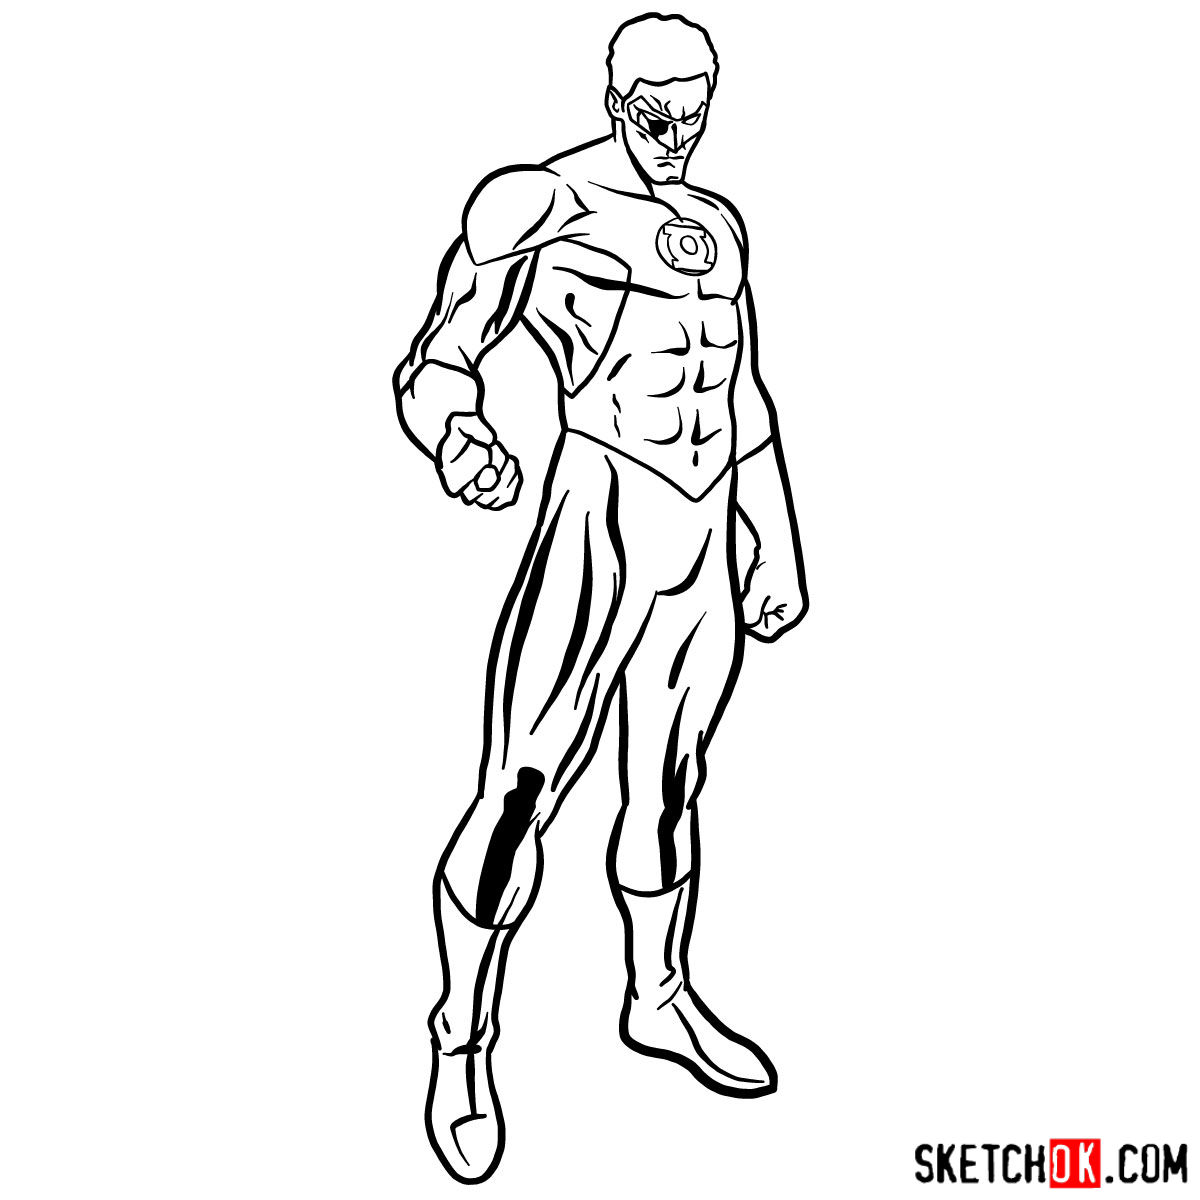 How to draw Hal Jordan as Green Lantern - step 11